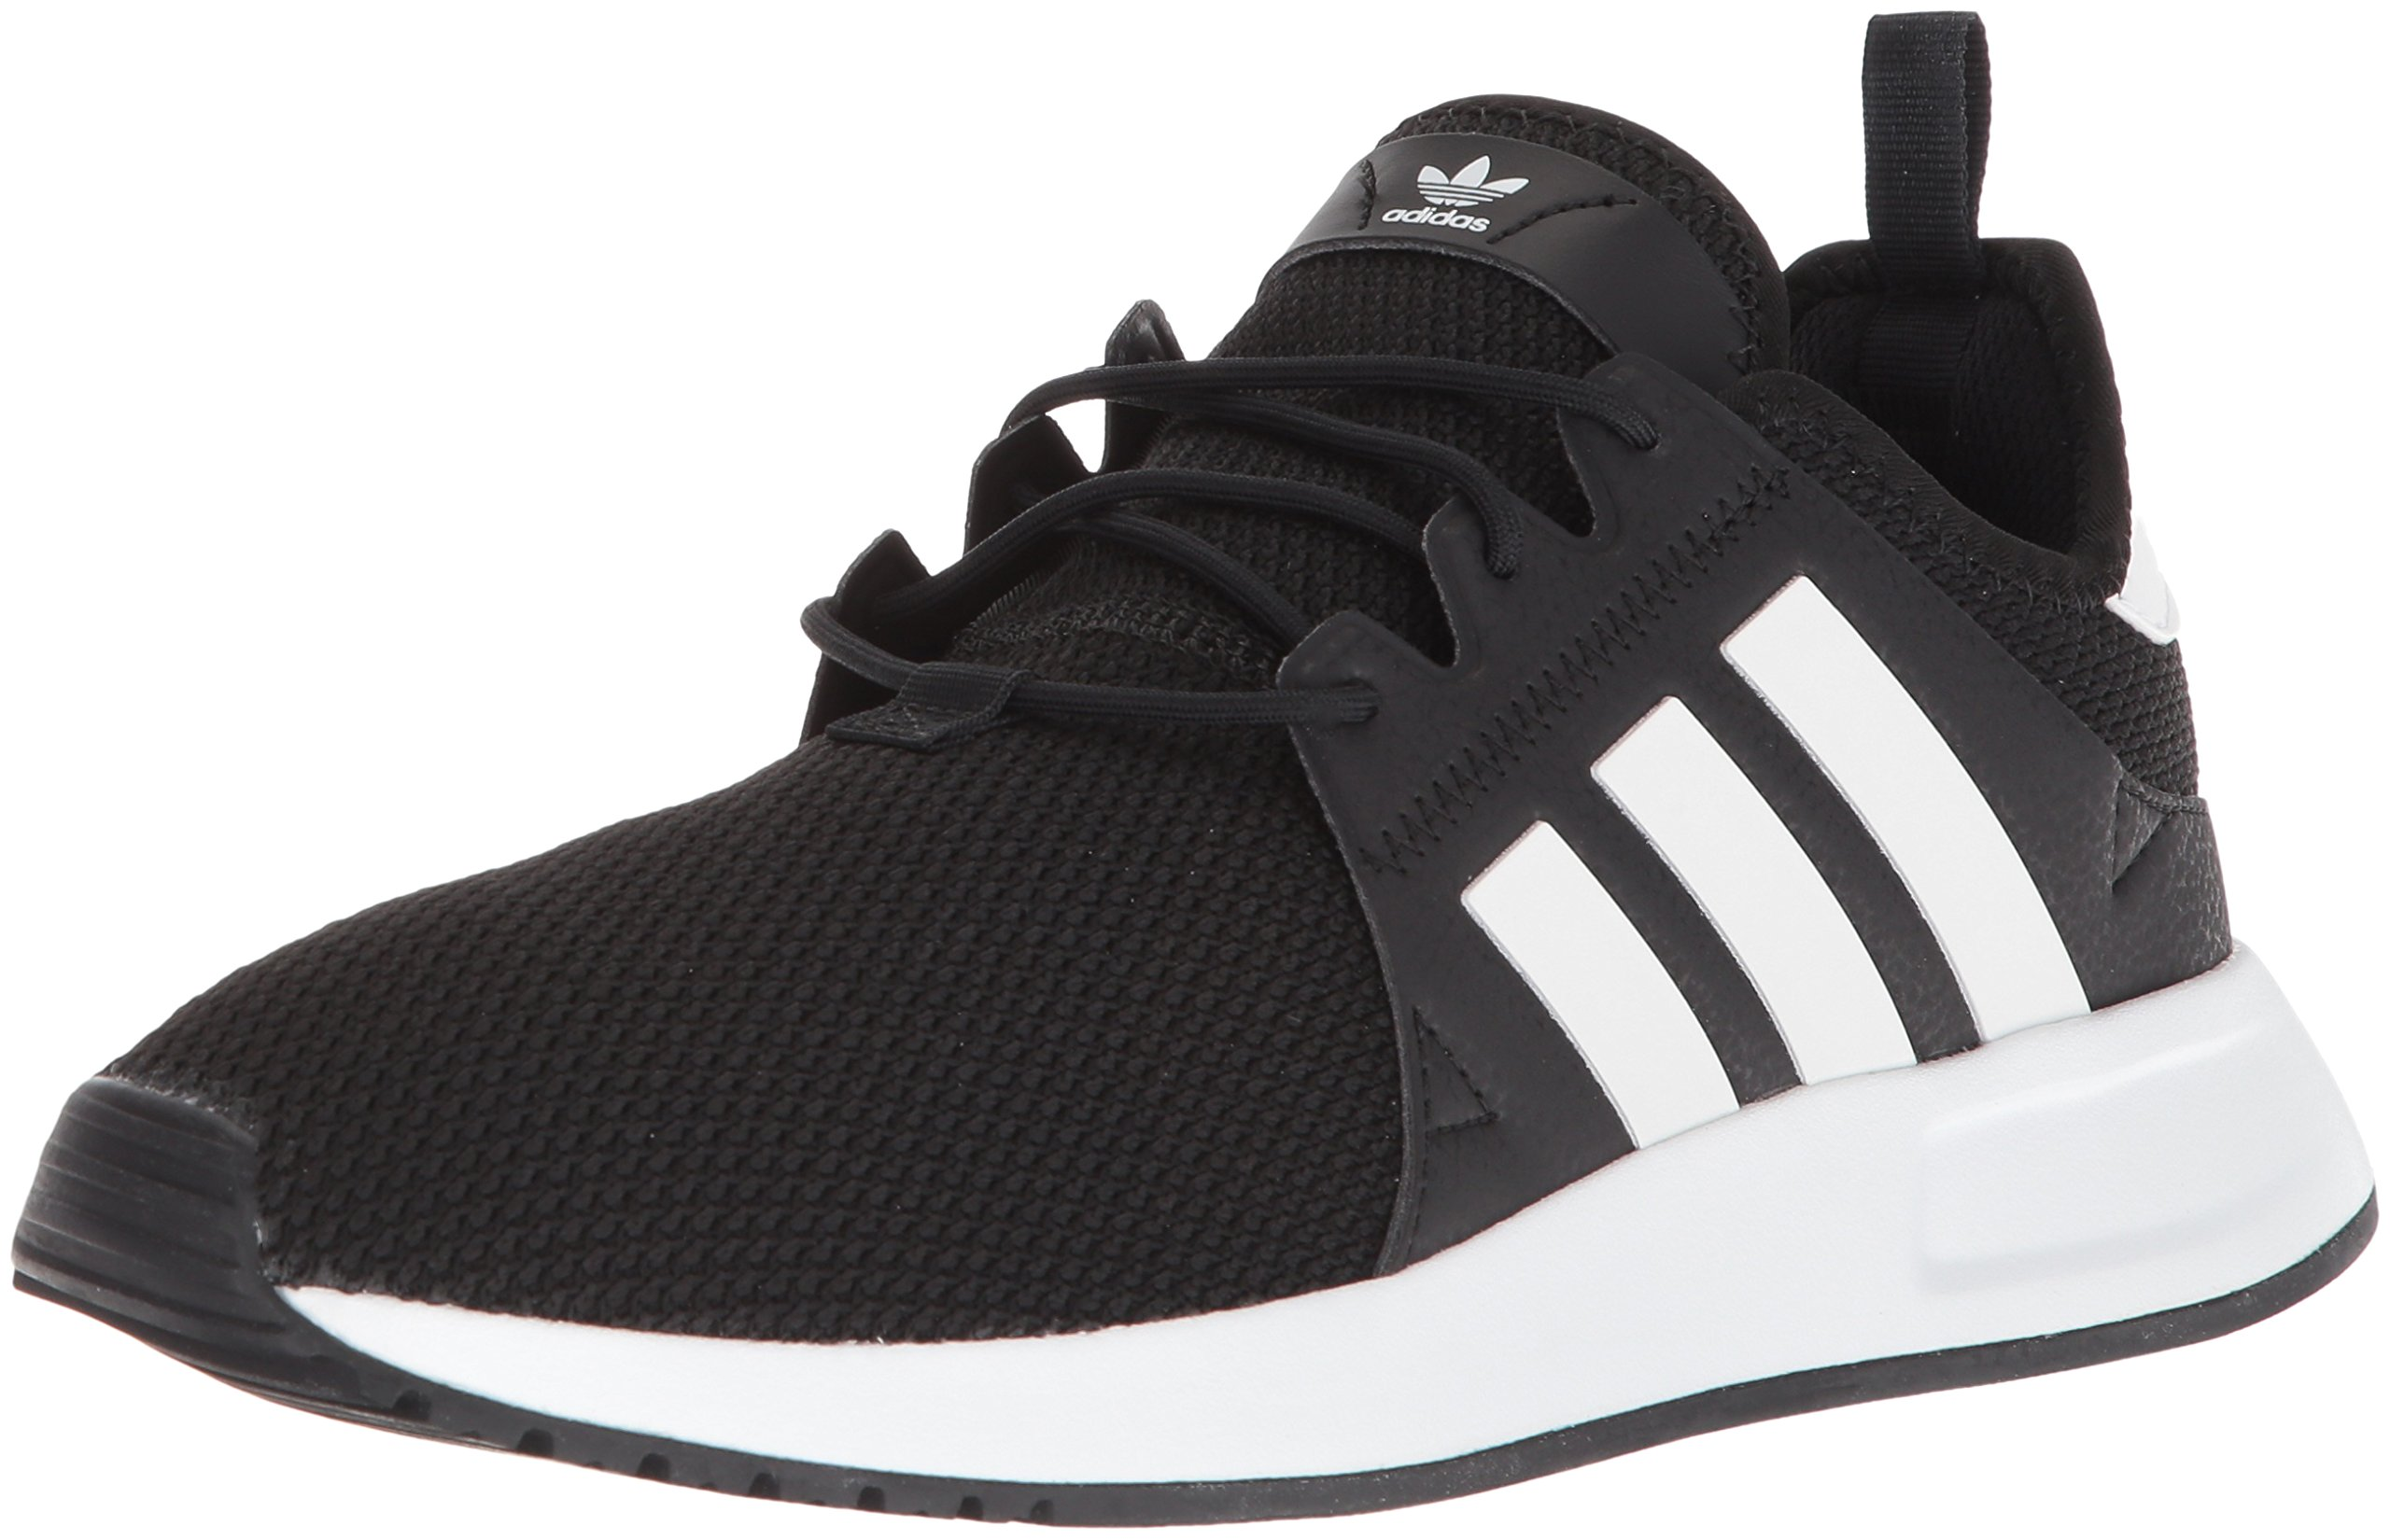 55971a4eb45d Galleon - Adidas Originals Men s X PLR Running Shoe